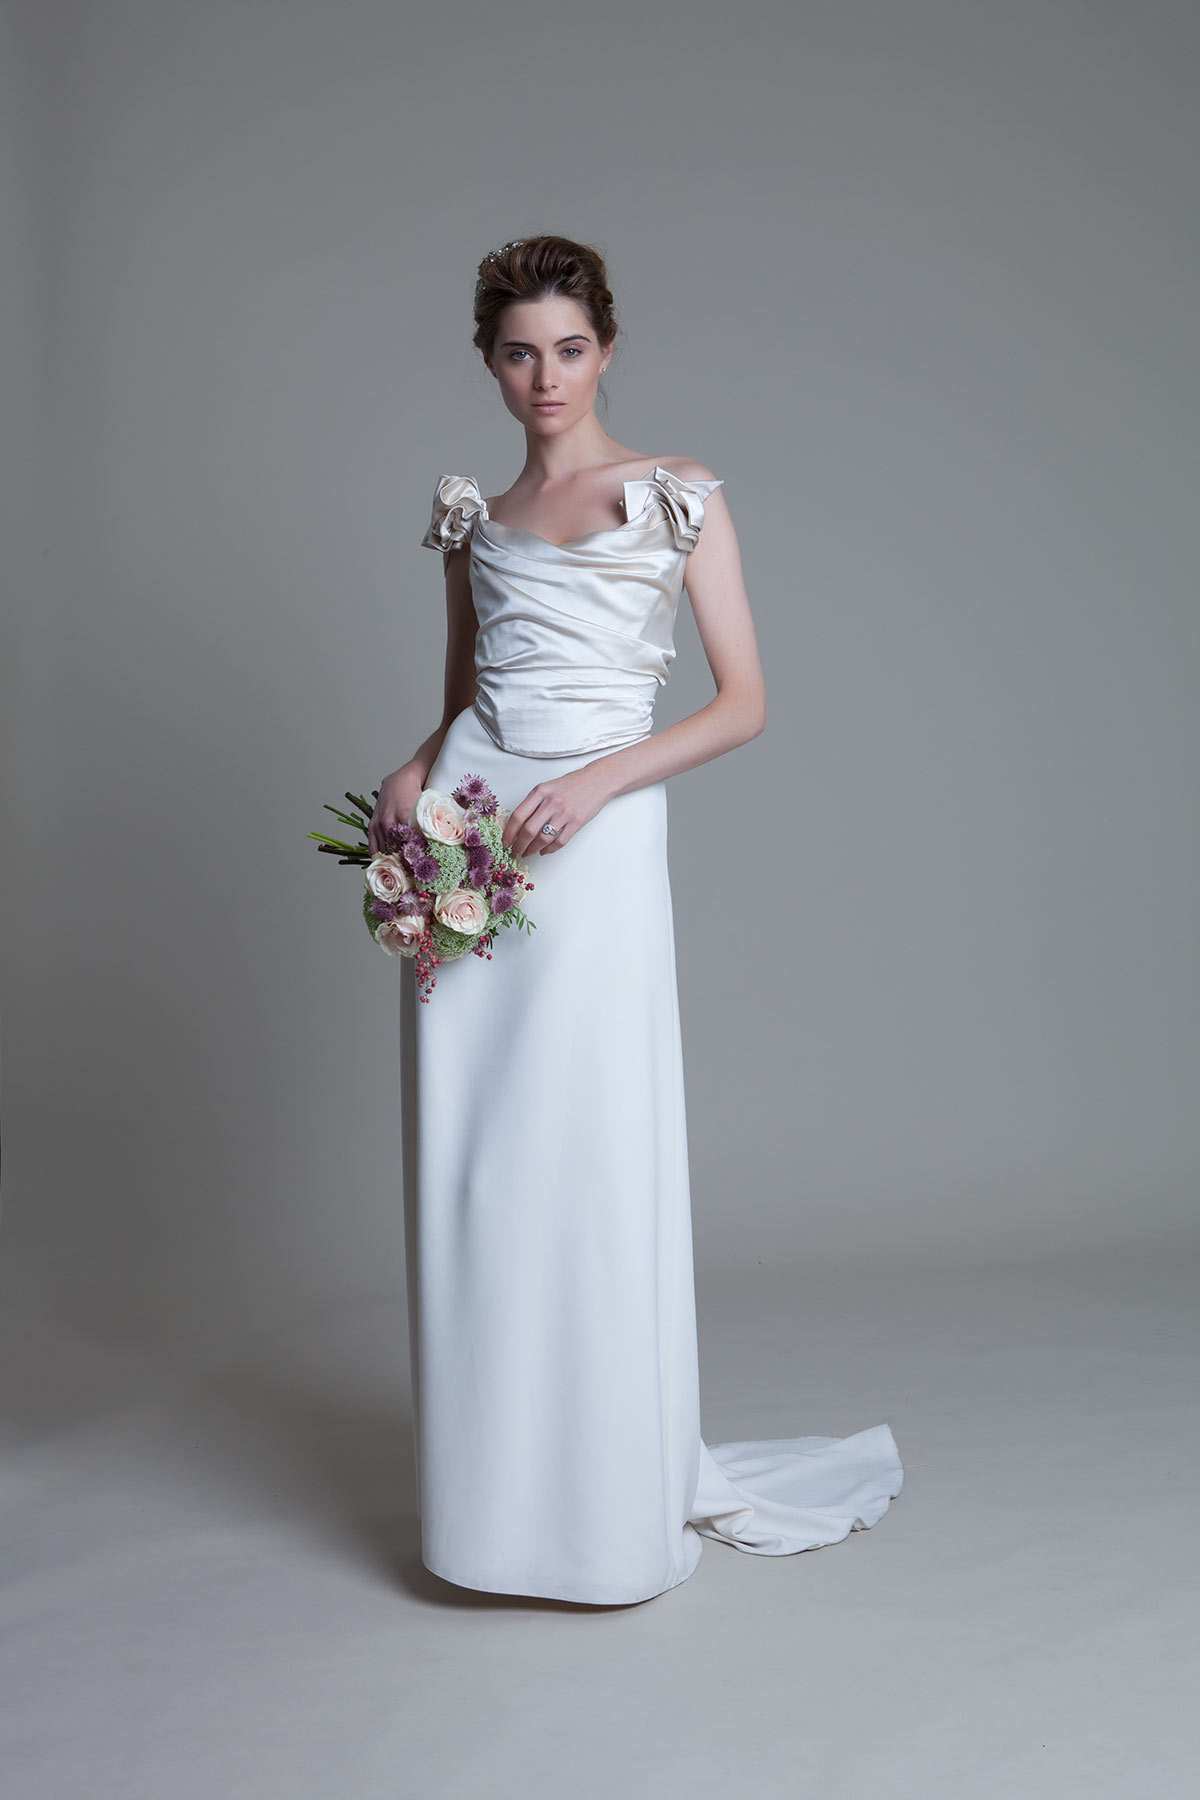 Andrea Duchess Silk Corset Crepe Column Ivory Skirt with buddle train Bridal Wedding Dress by Halfpenny London